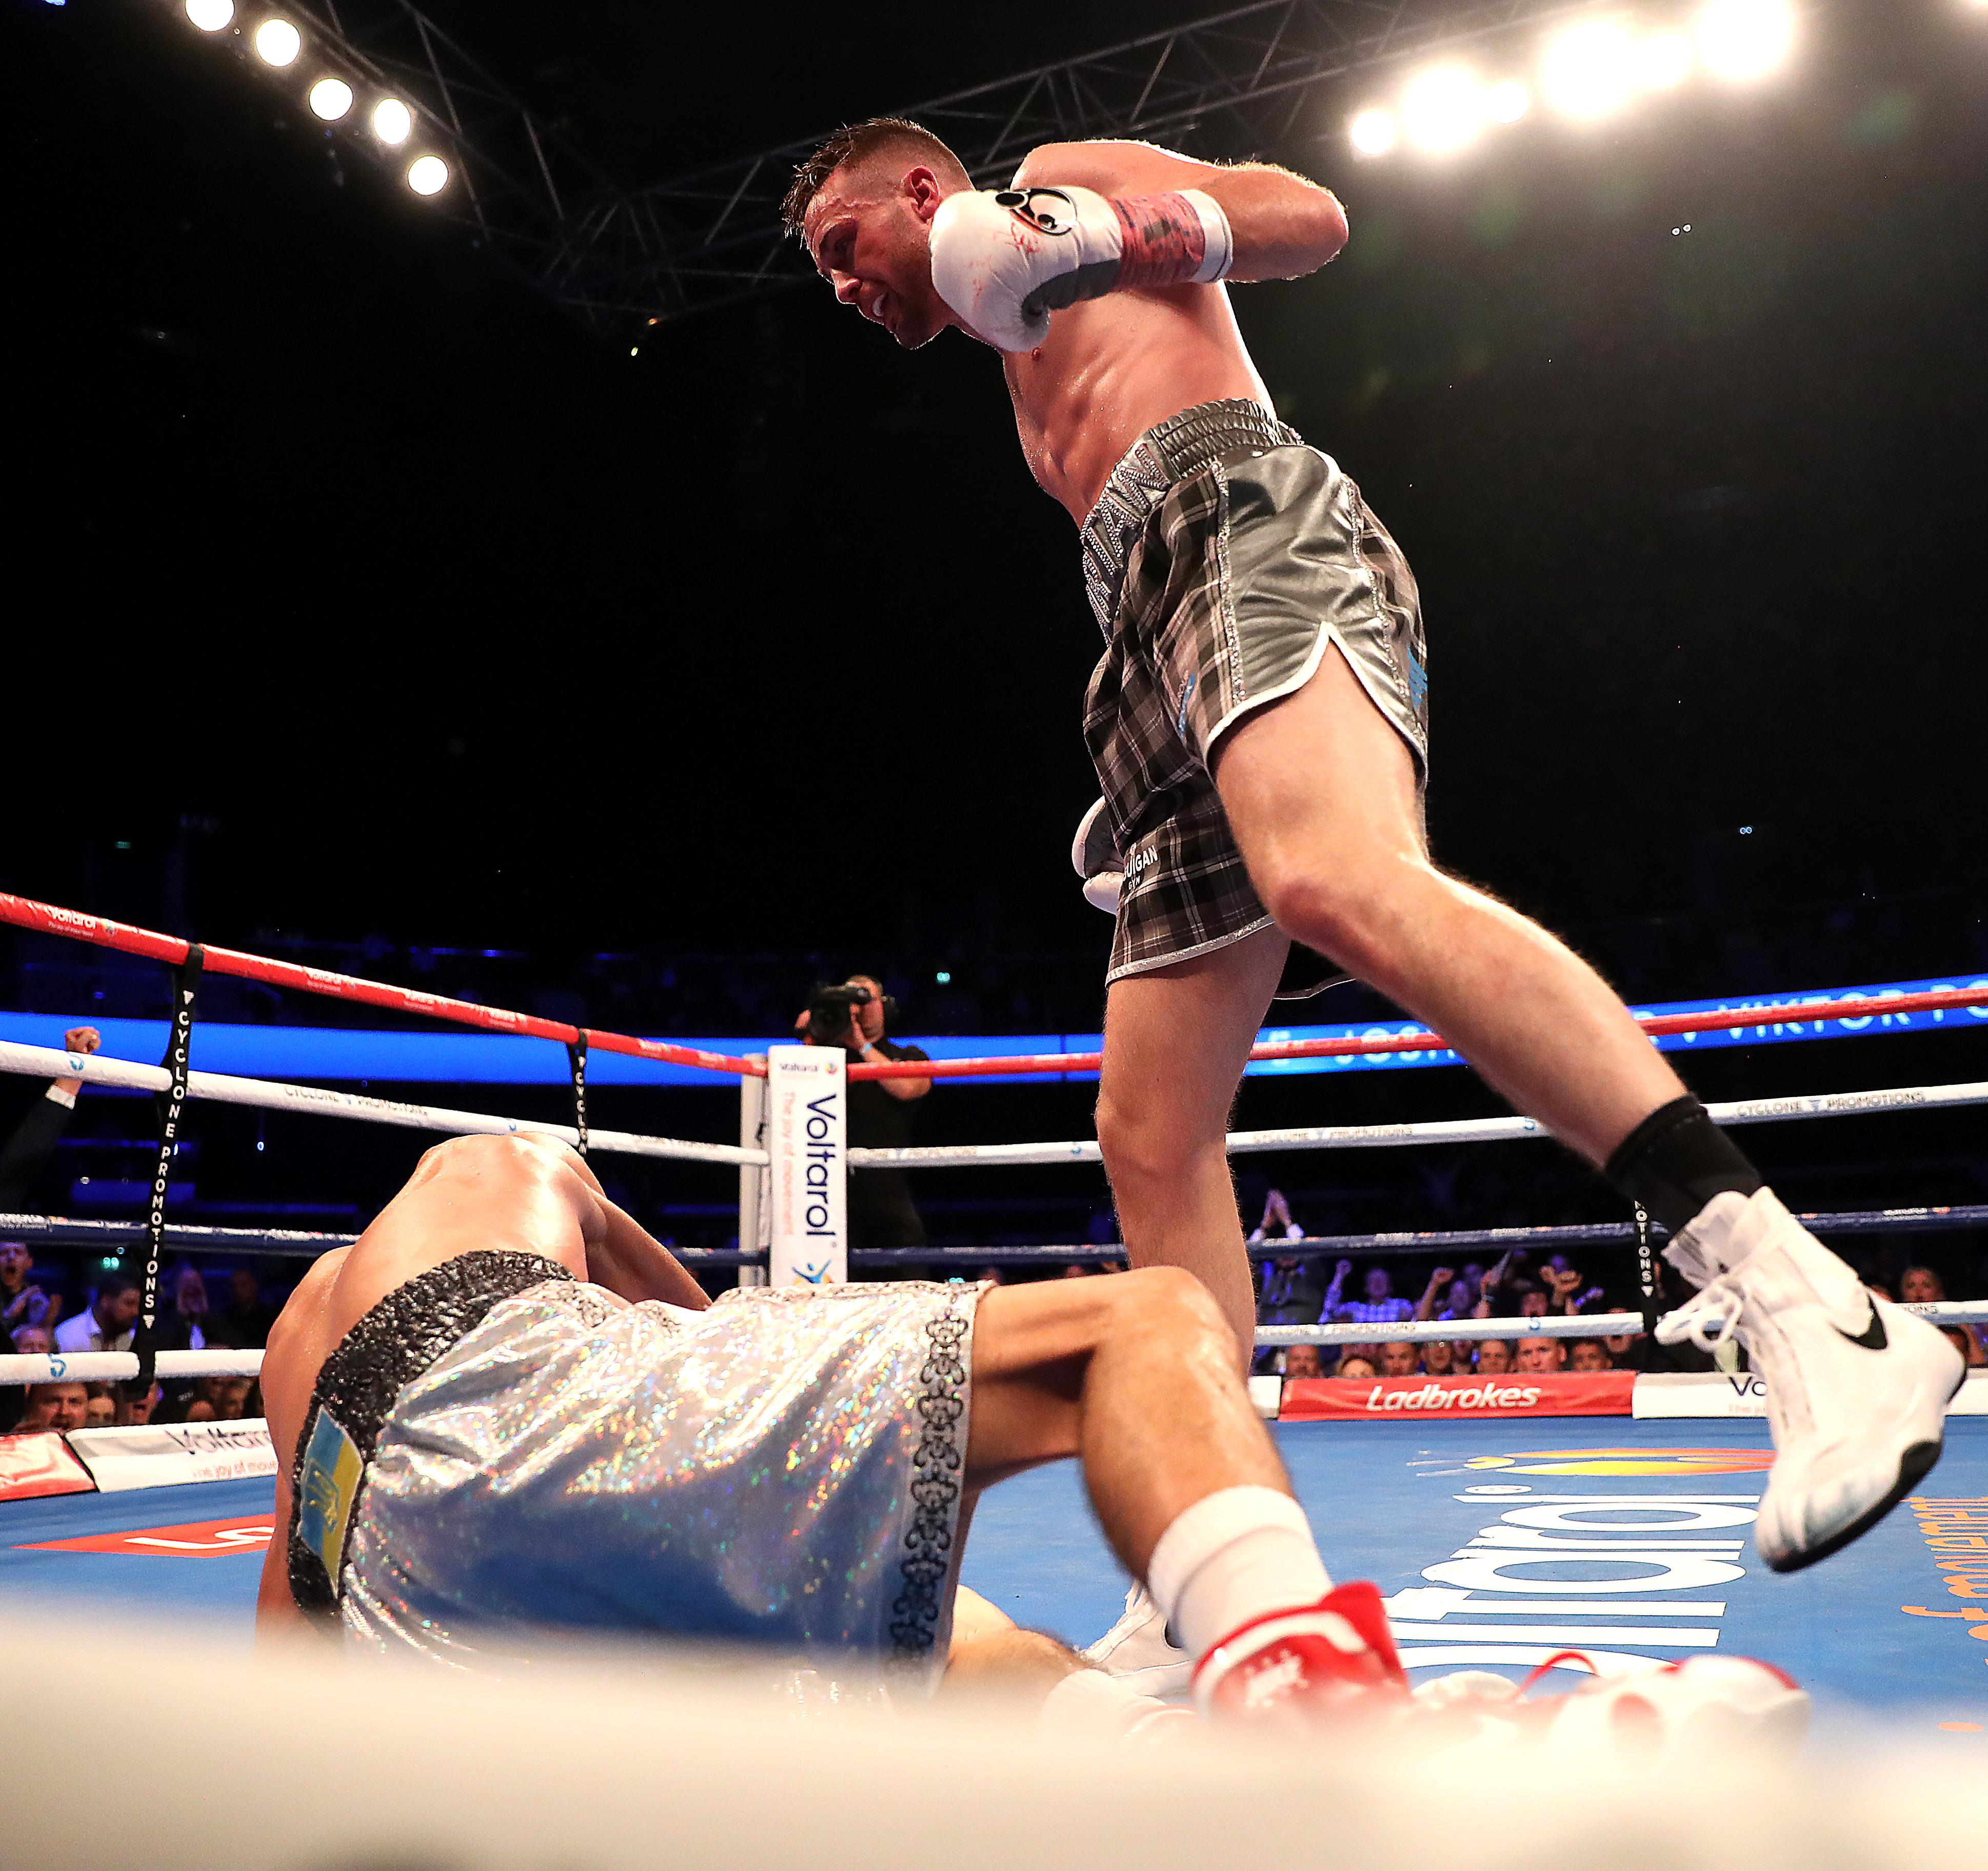 Viktor Postol was floored in the 10th round